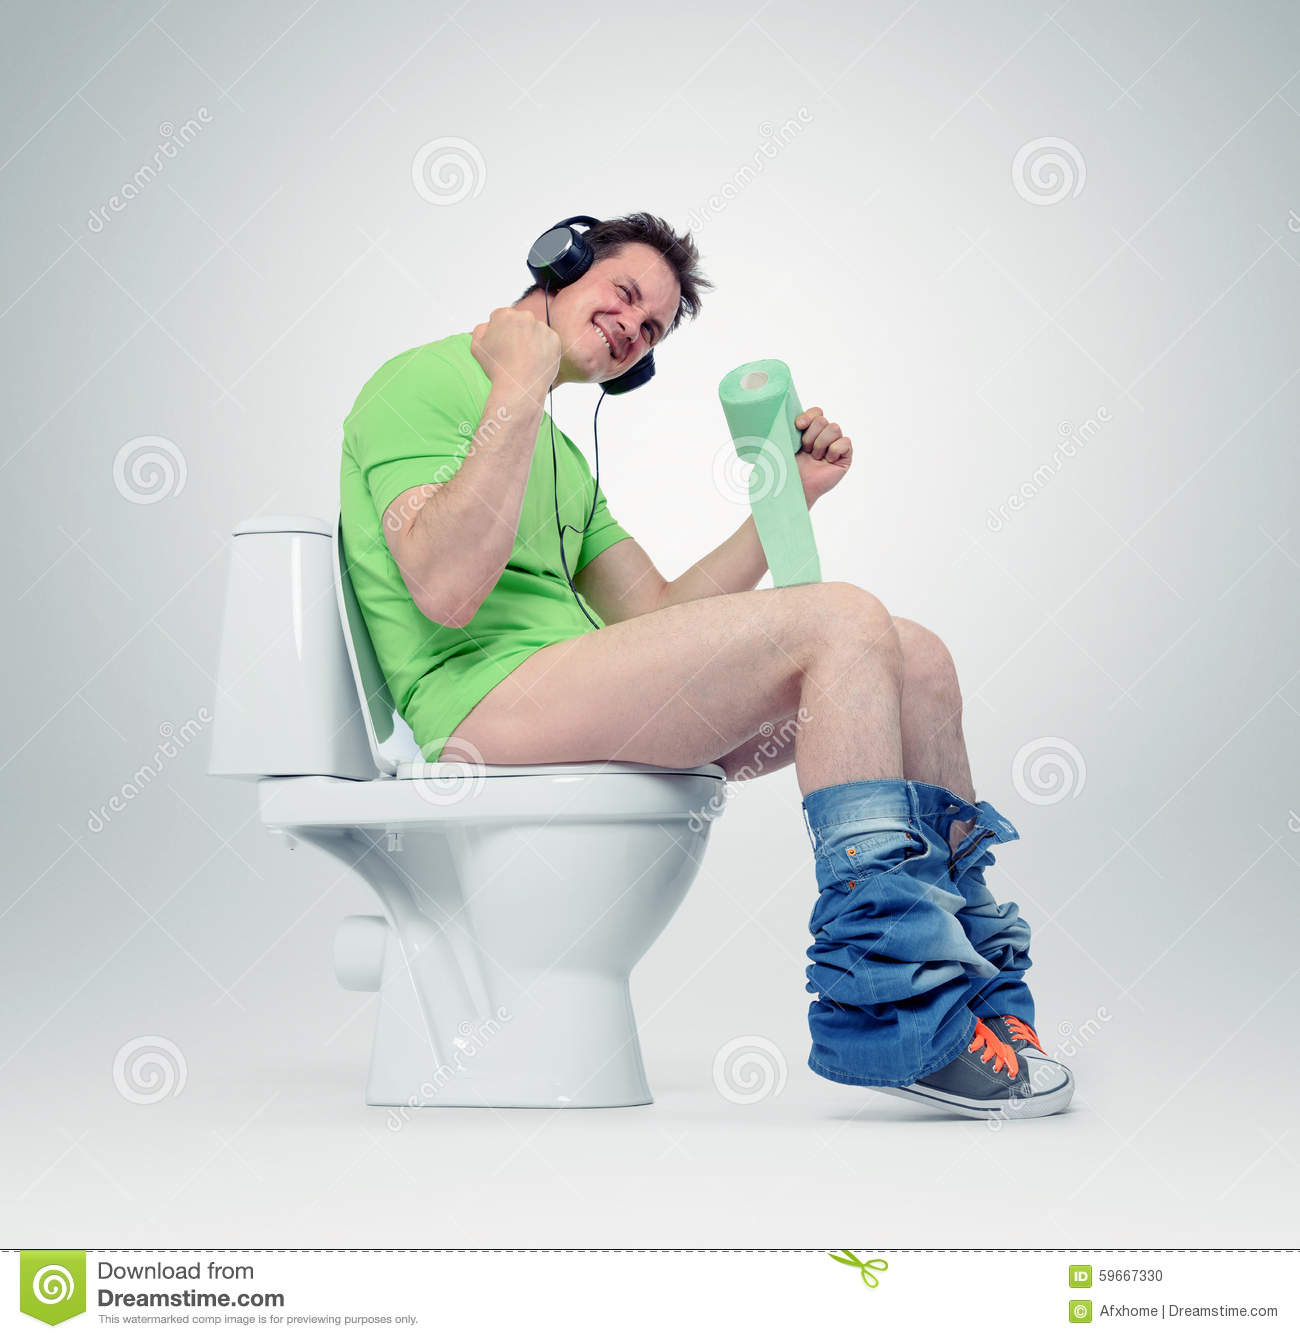 Playlist (120) - Page 2 Man-headphones-sitting-toilet-yes-situation-concept-59667330